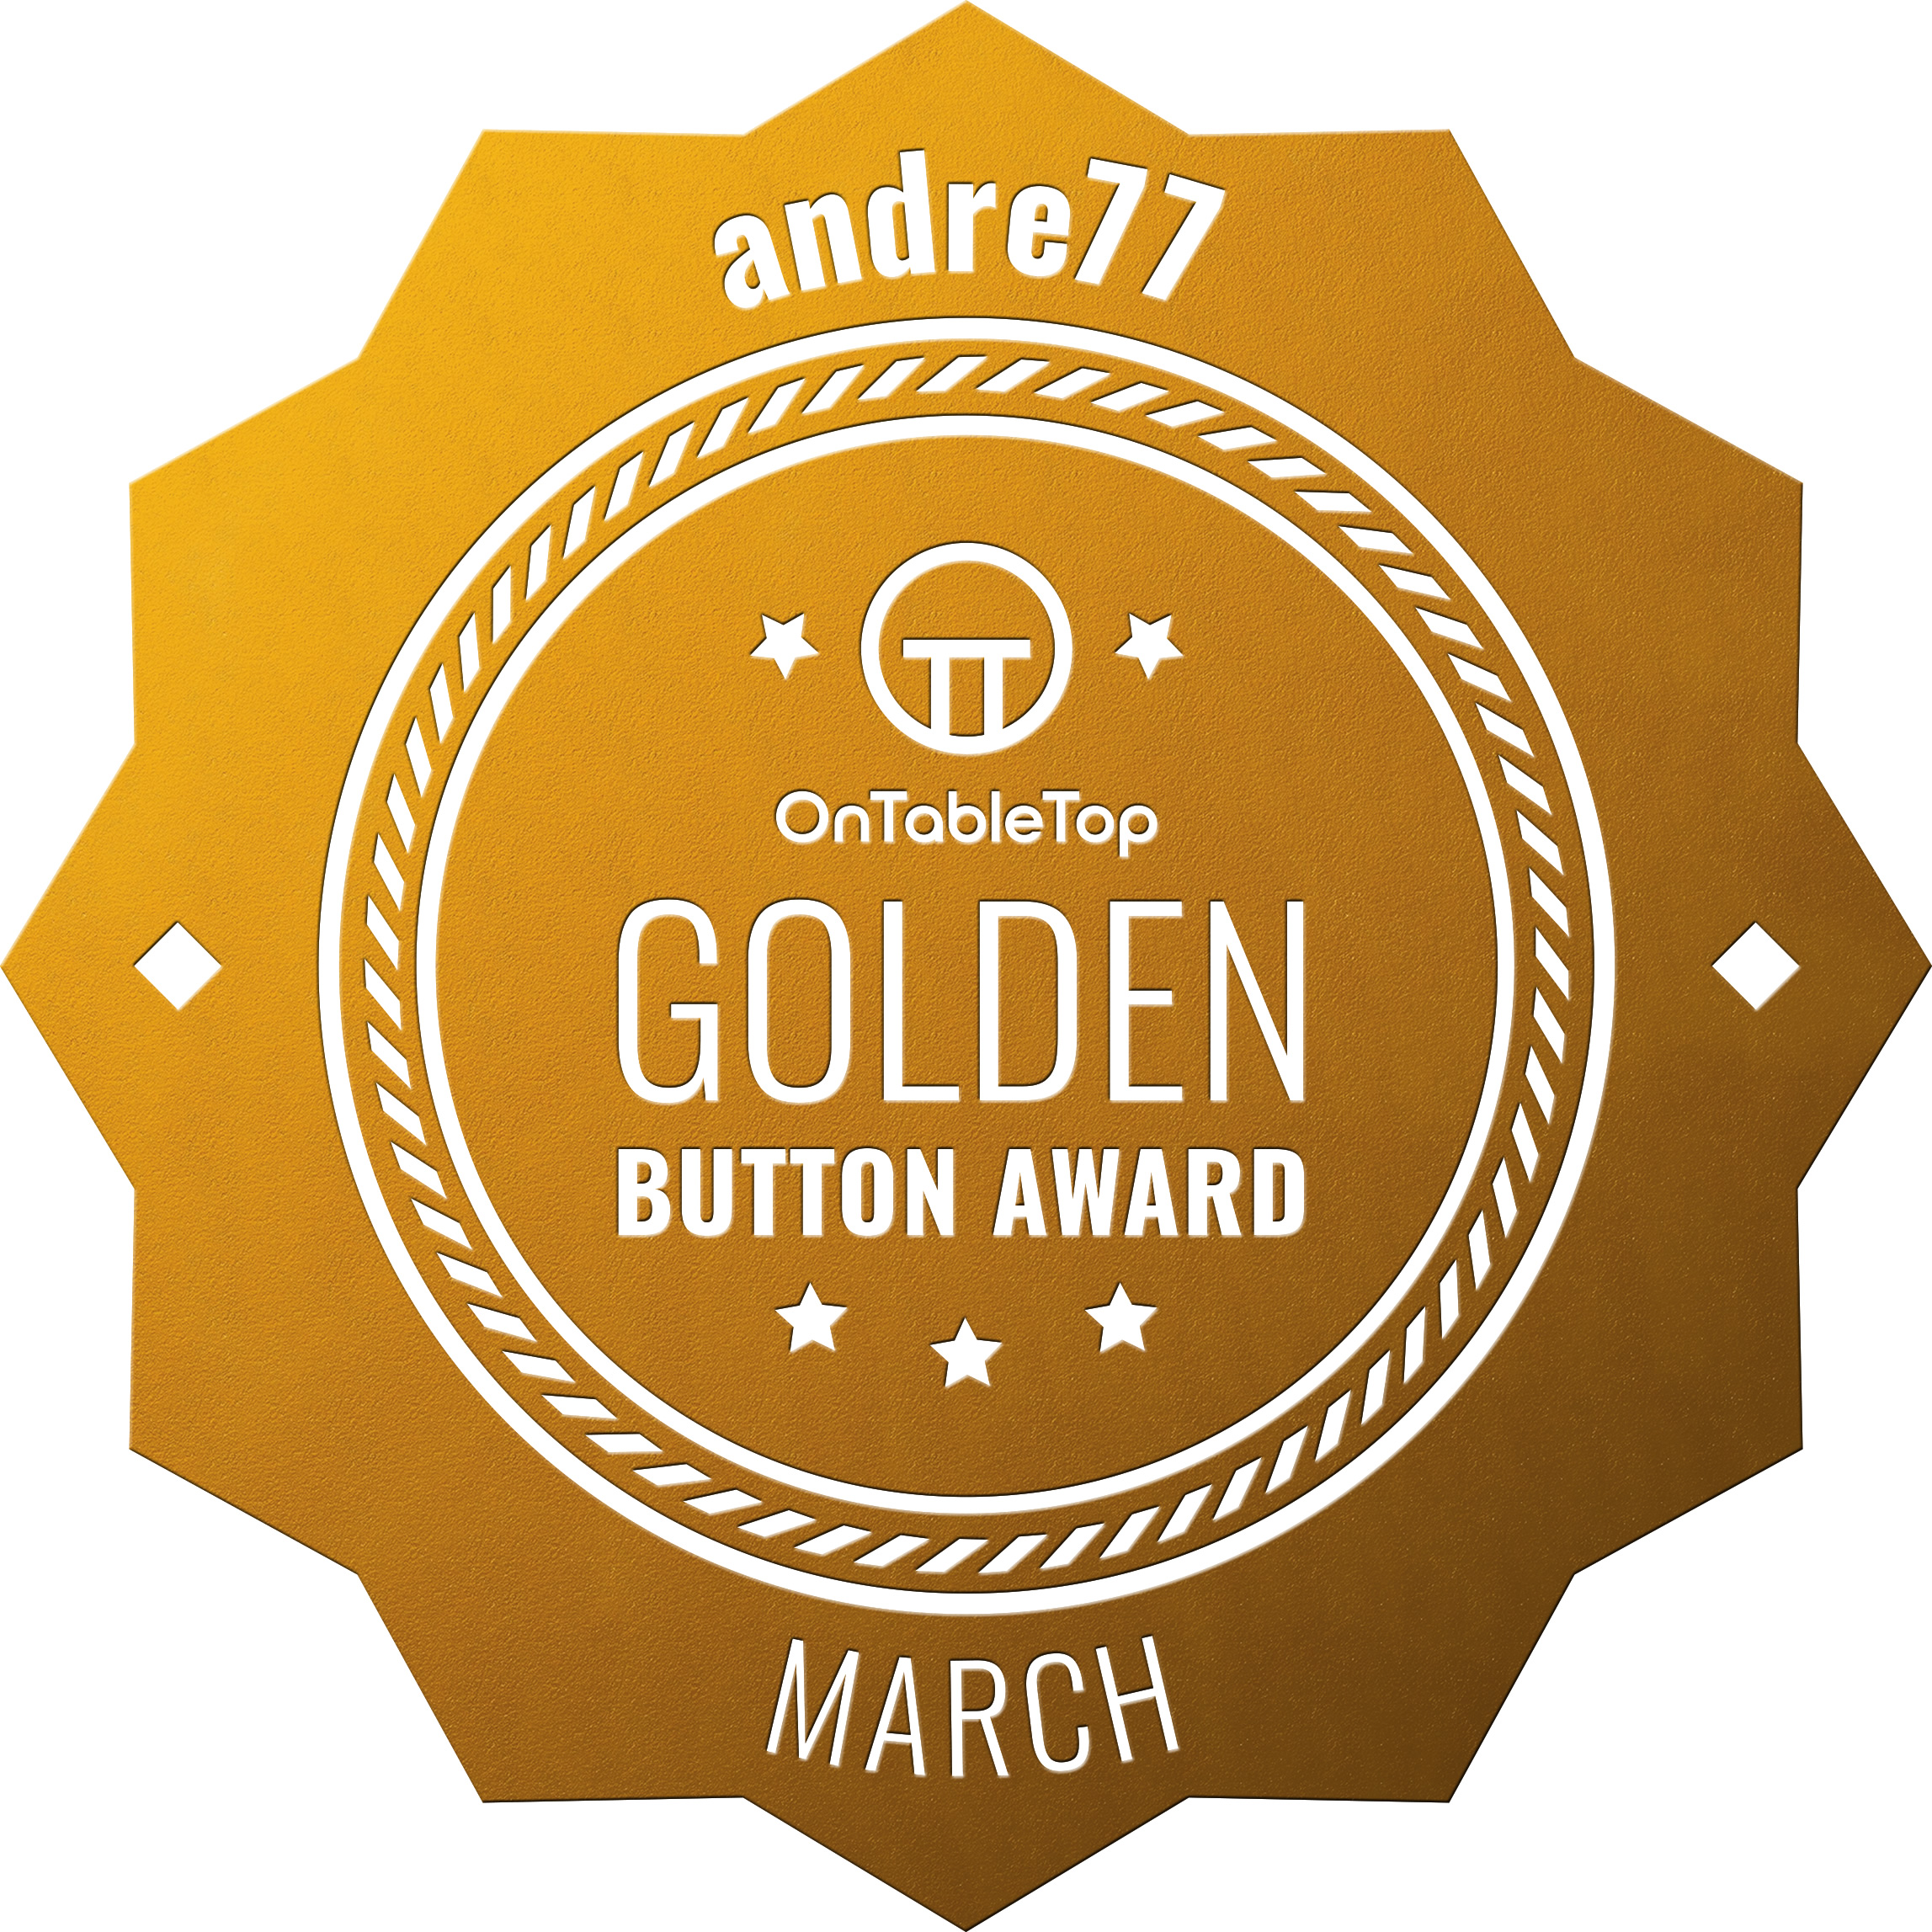 andre77-Golden-Button-March-2021